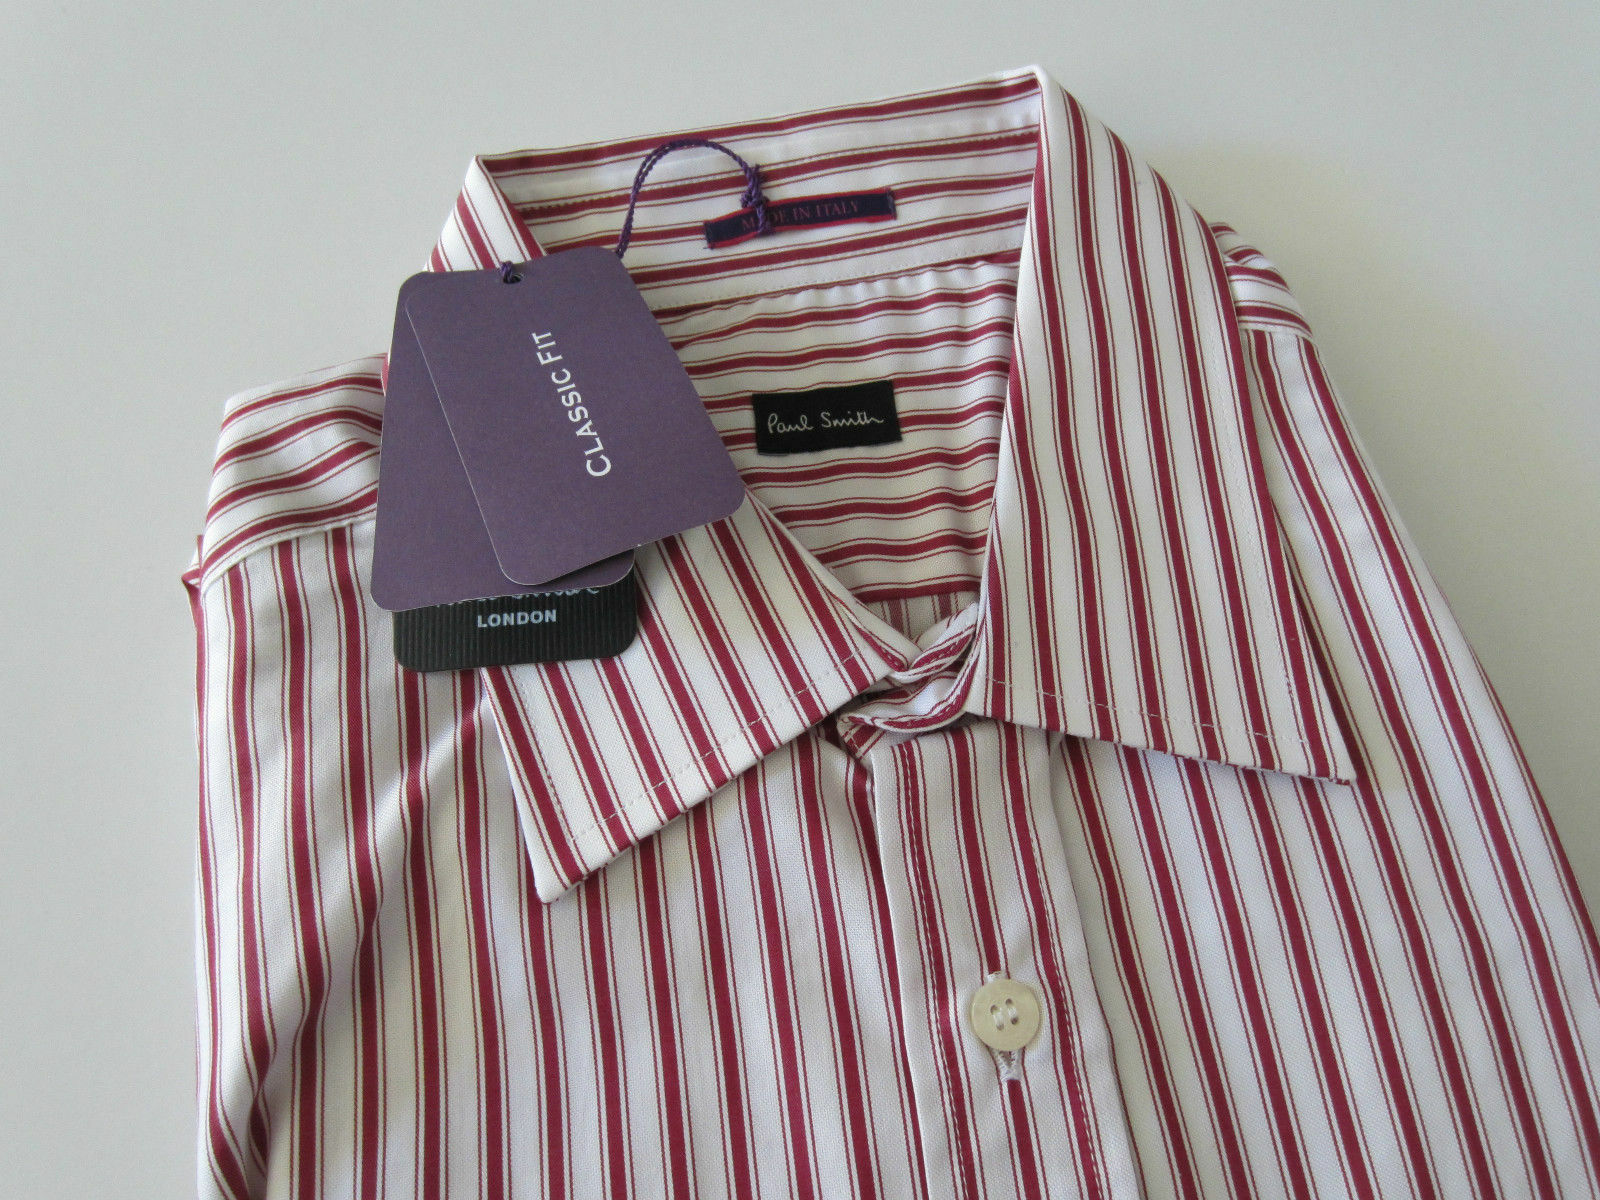 Paul Smith Formal LS Classic  Shirt  - Size 16.5   42  - p2p 22.5  - BNWT